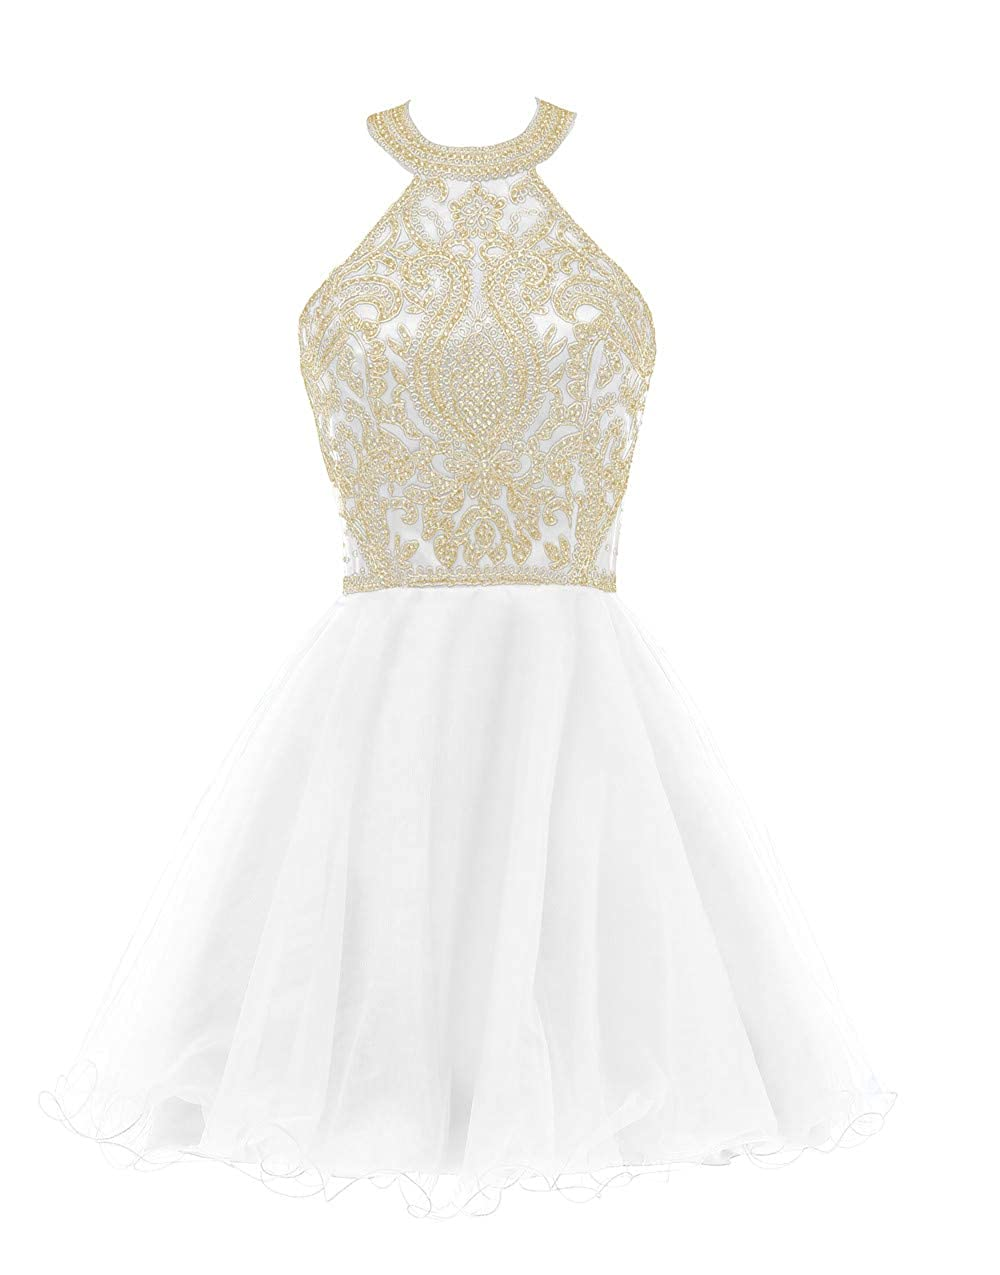 White Huifany Short Halter Top Prom gold Lace Beaded Homecoming Dress Cocktail Party Gowns